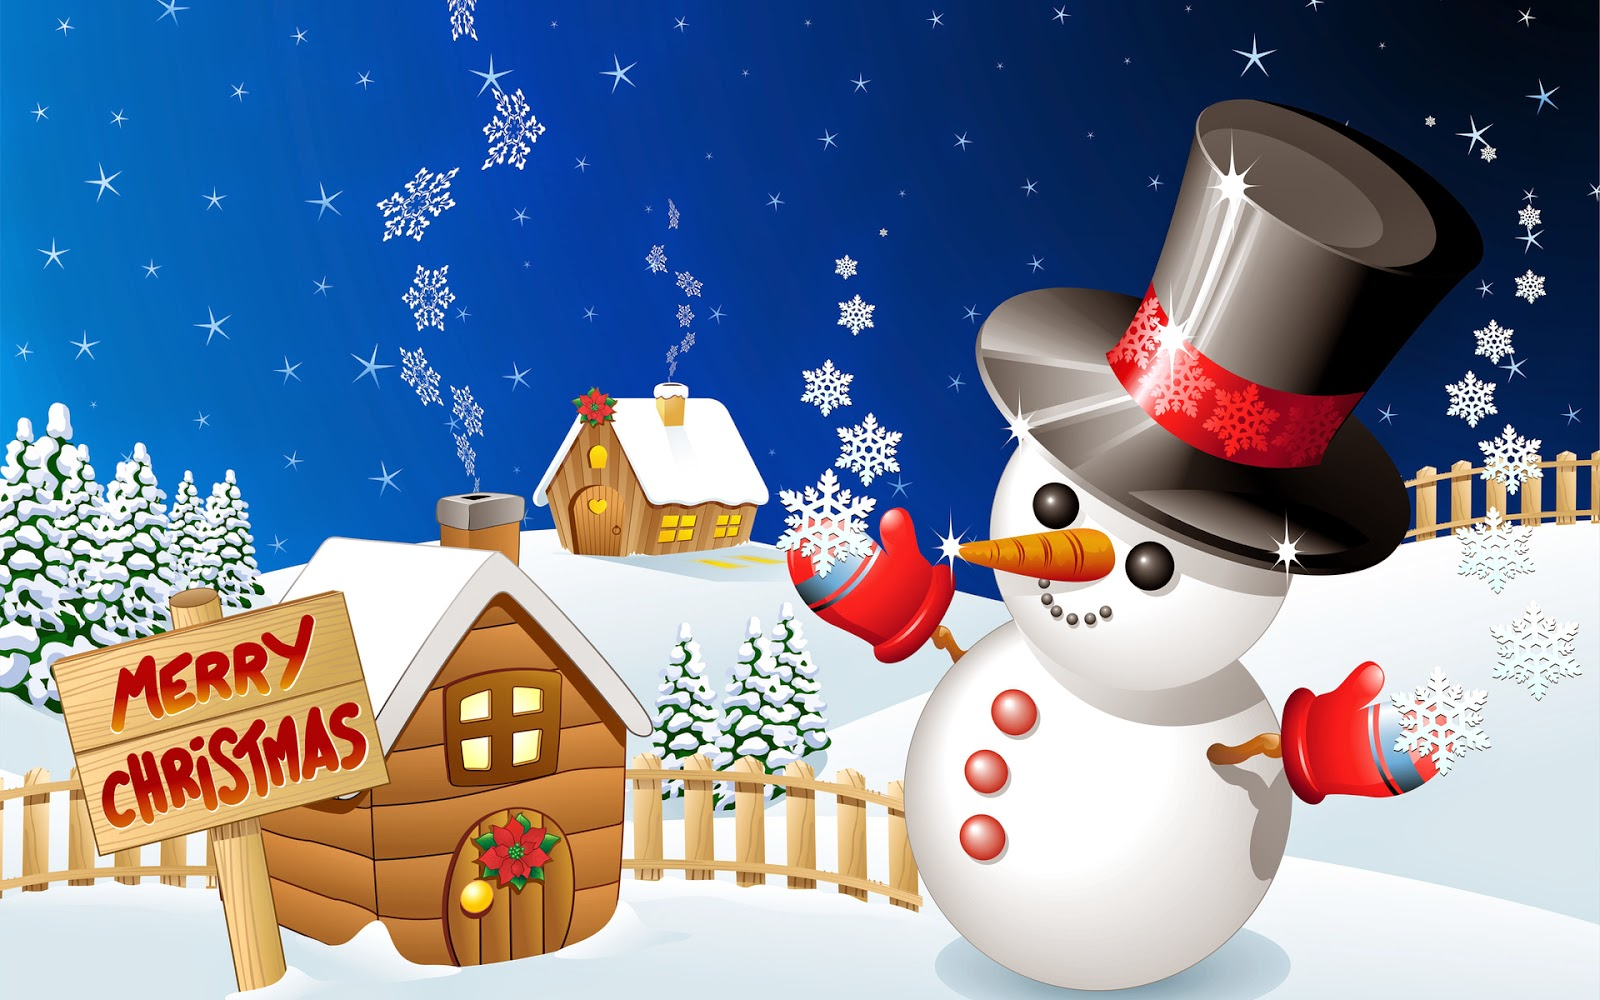 Christmas snowman cartoon drawings template images for